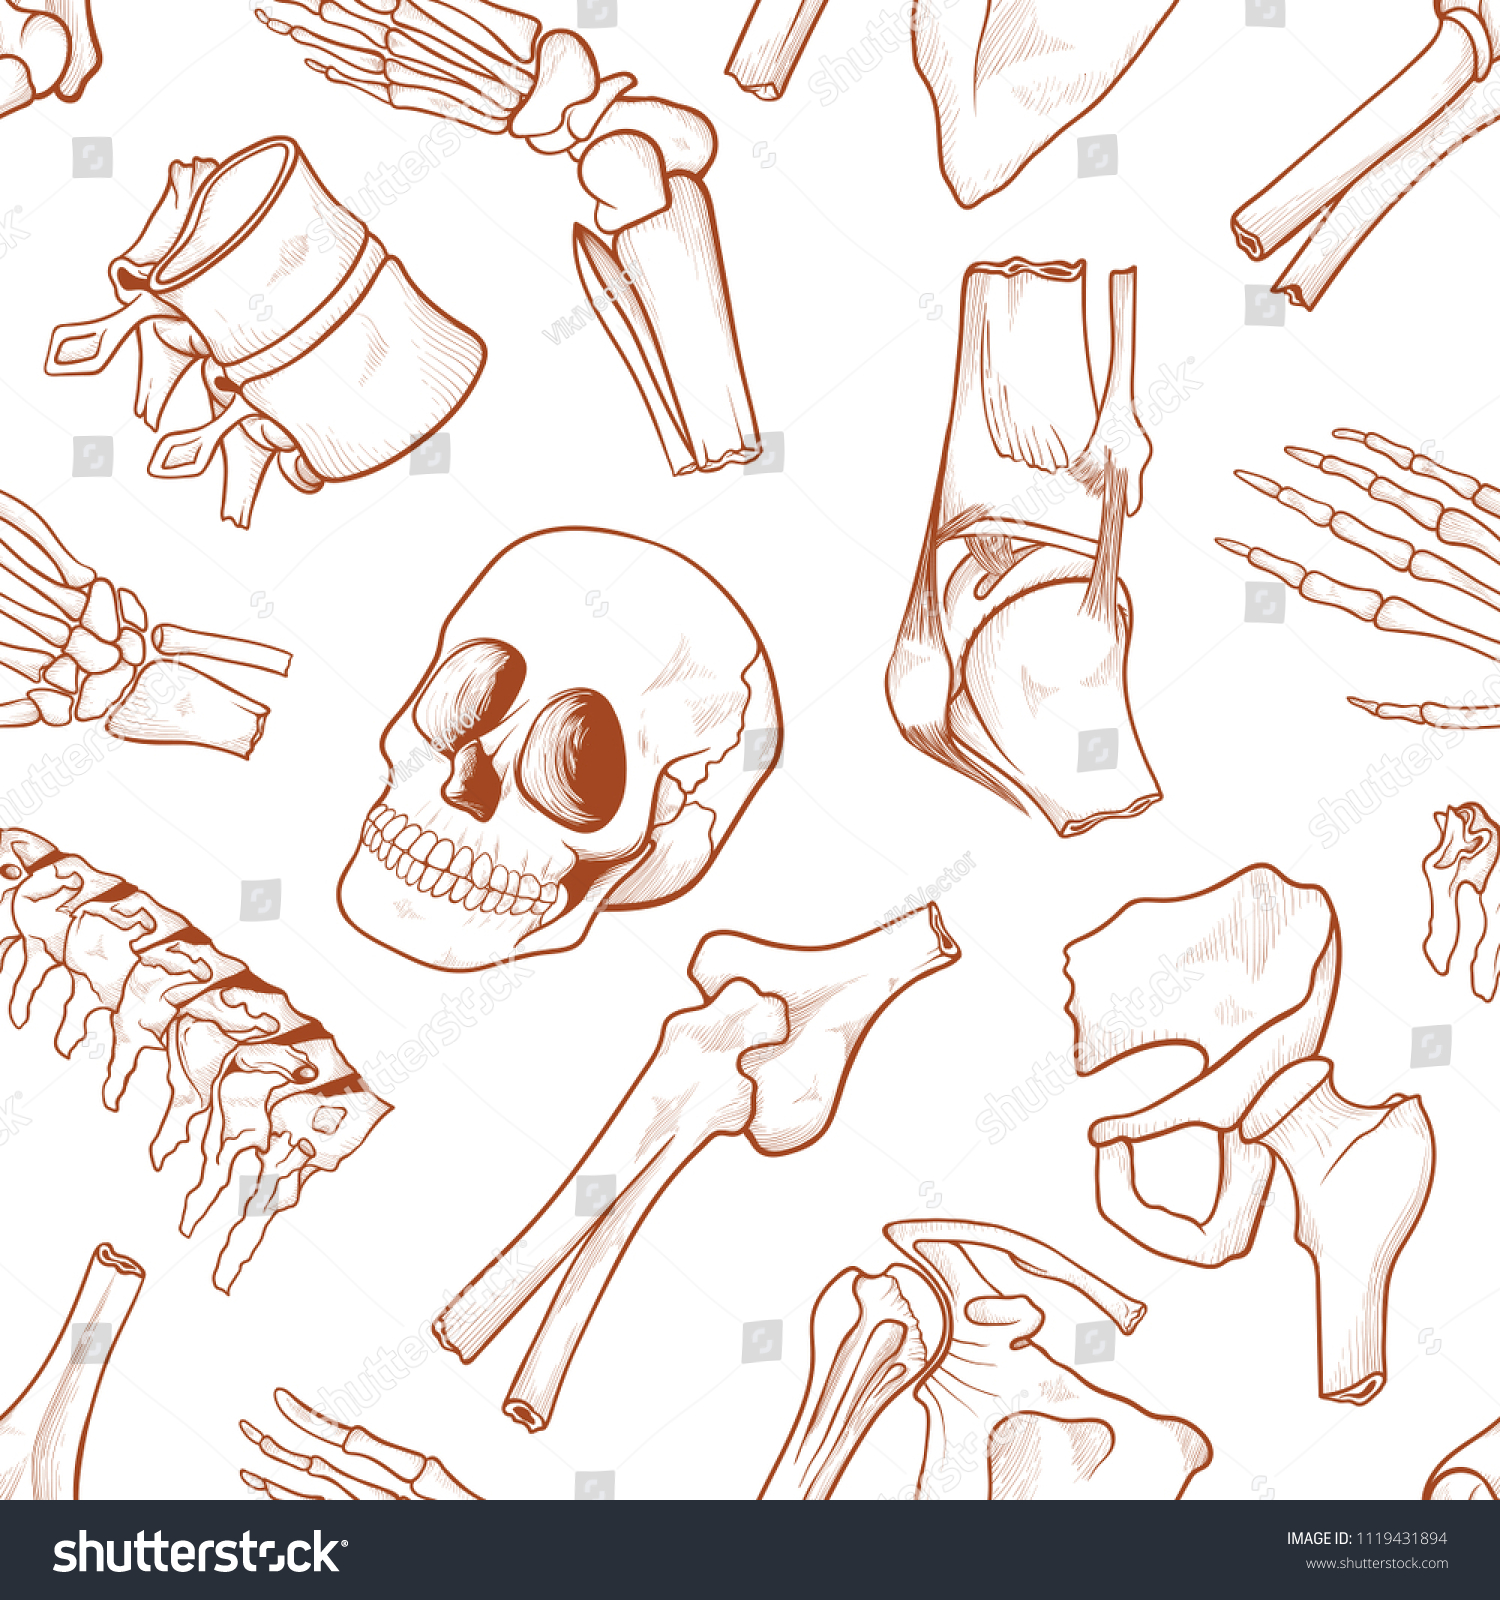 Human Bone Background Parts Human Skeletal Stock Vector Royalty